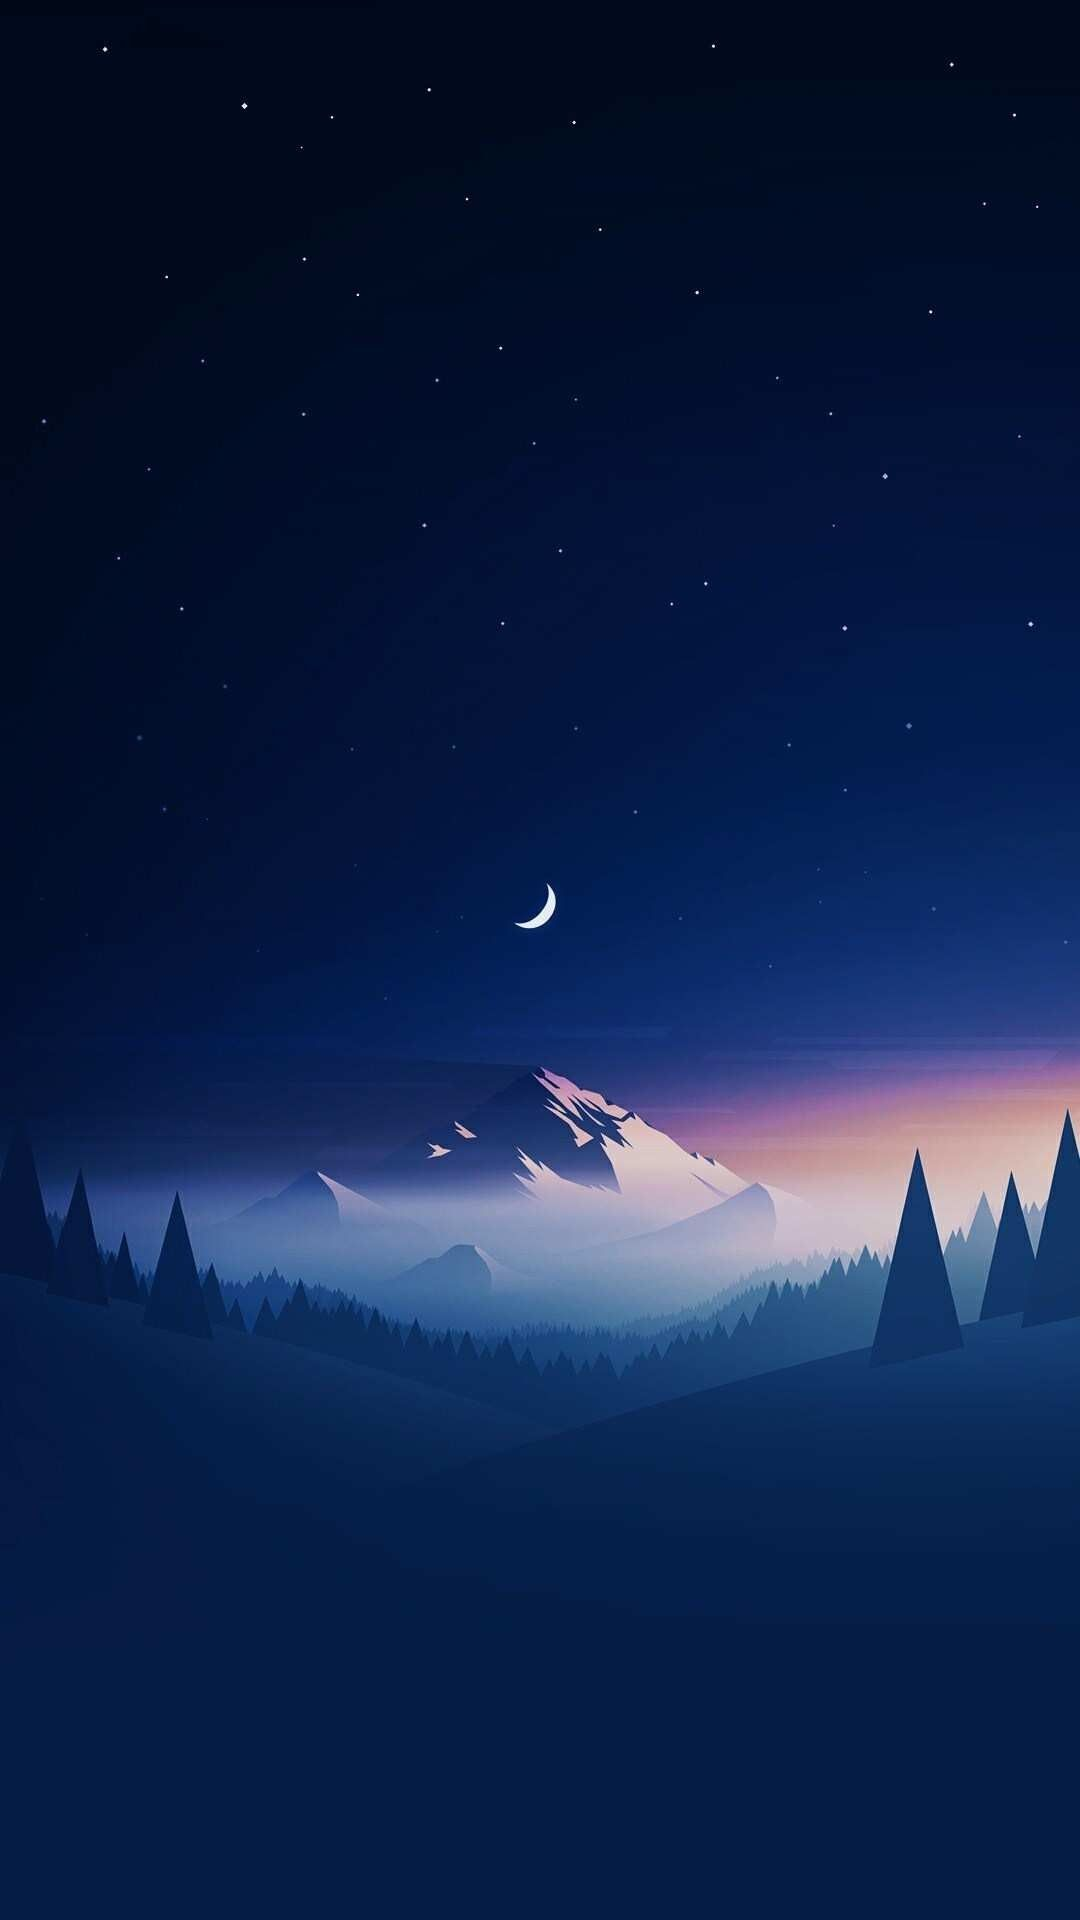 4k Wallpaper Home Screen 4k Wallpaper Iphone in 2020